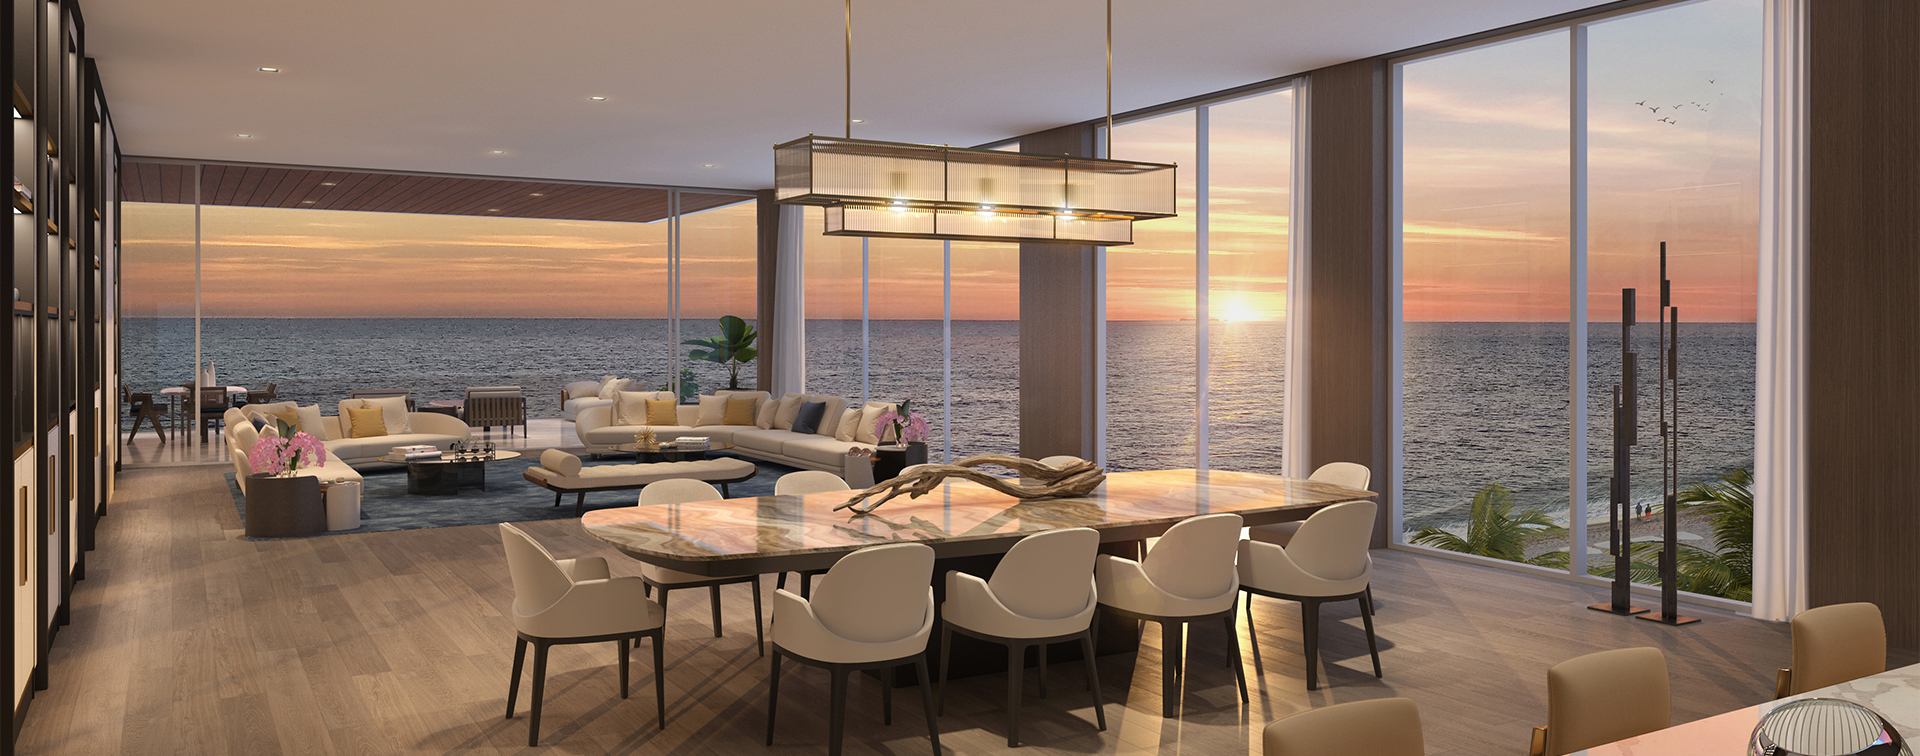 floor-to-ceiling glass at Sage Residences offer spectacular ocean views